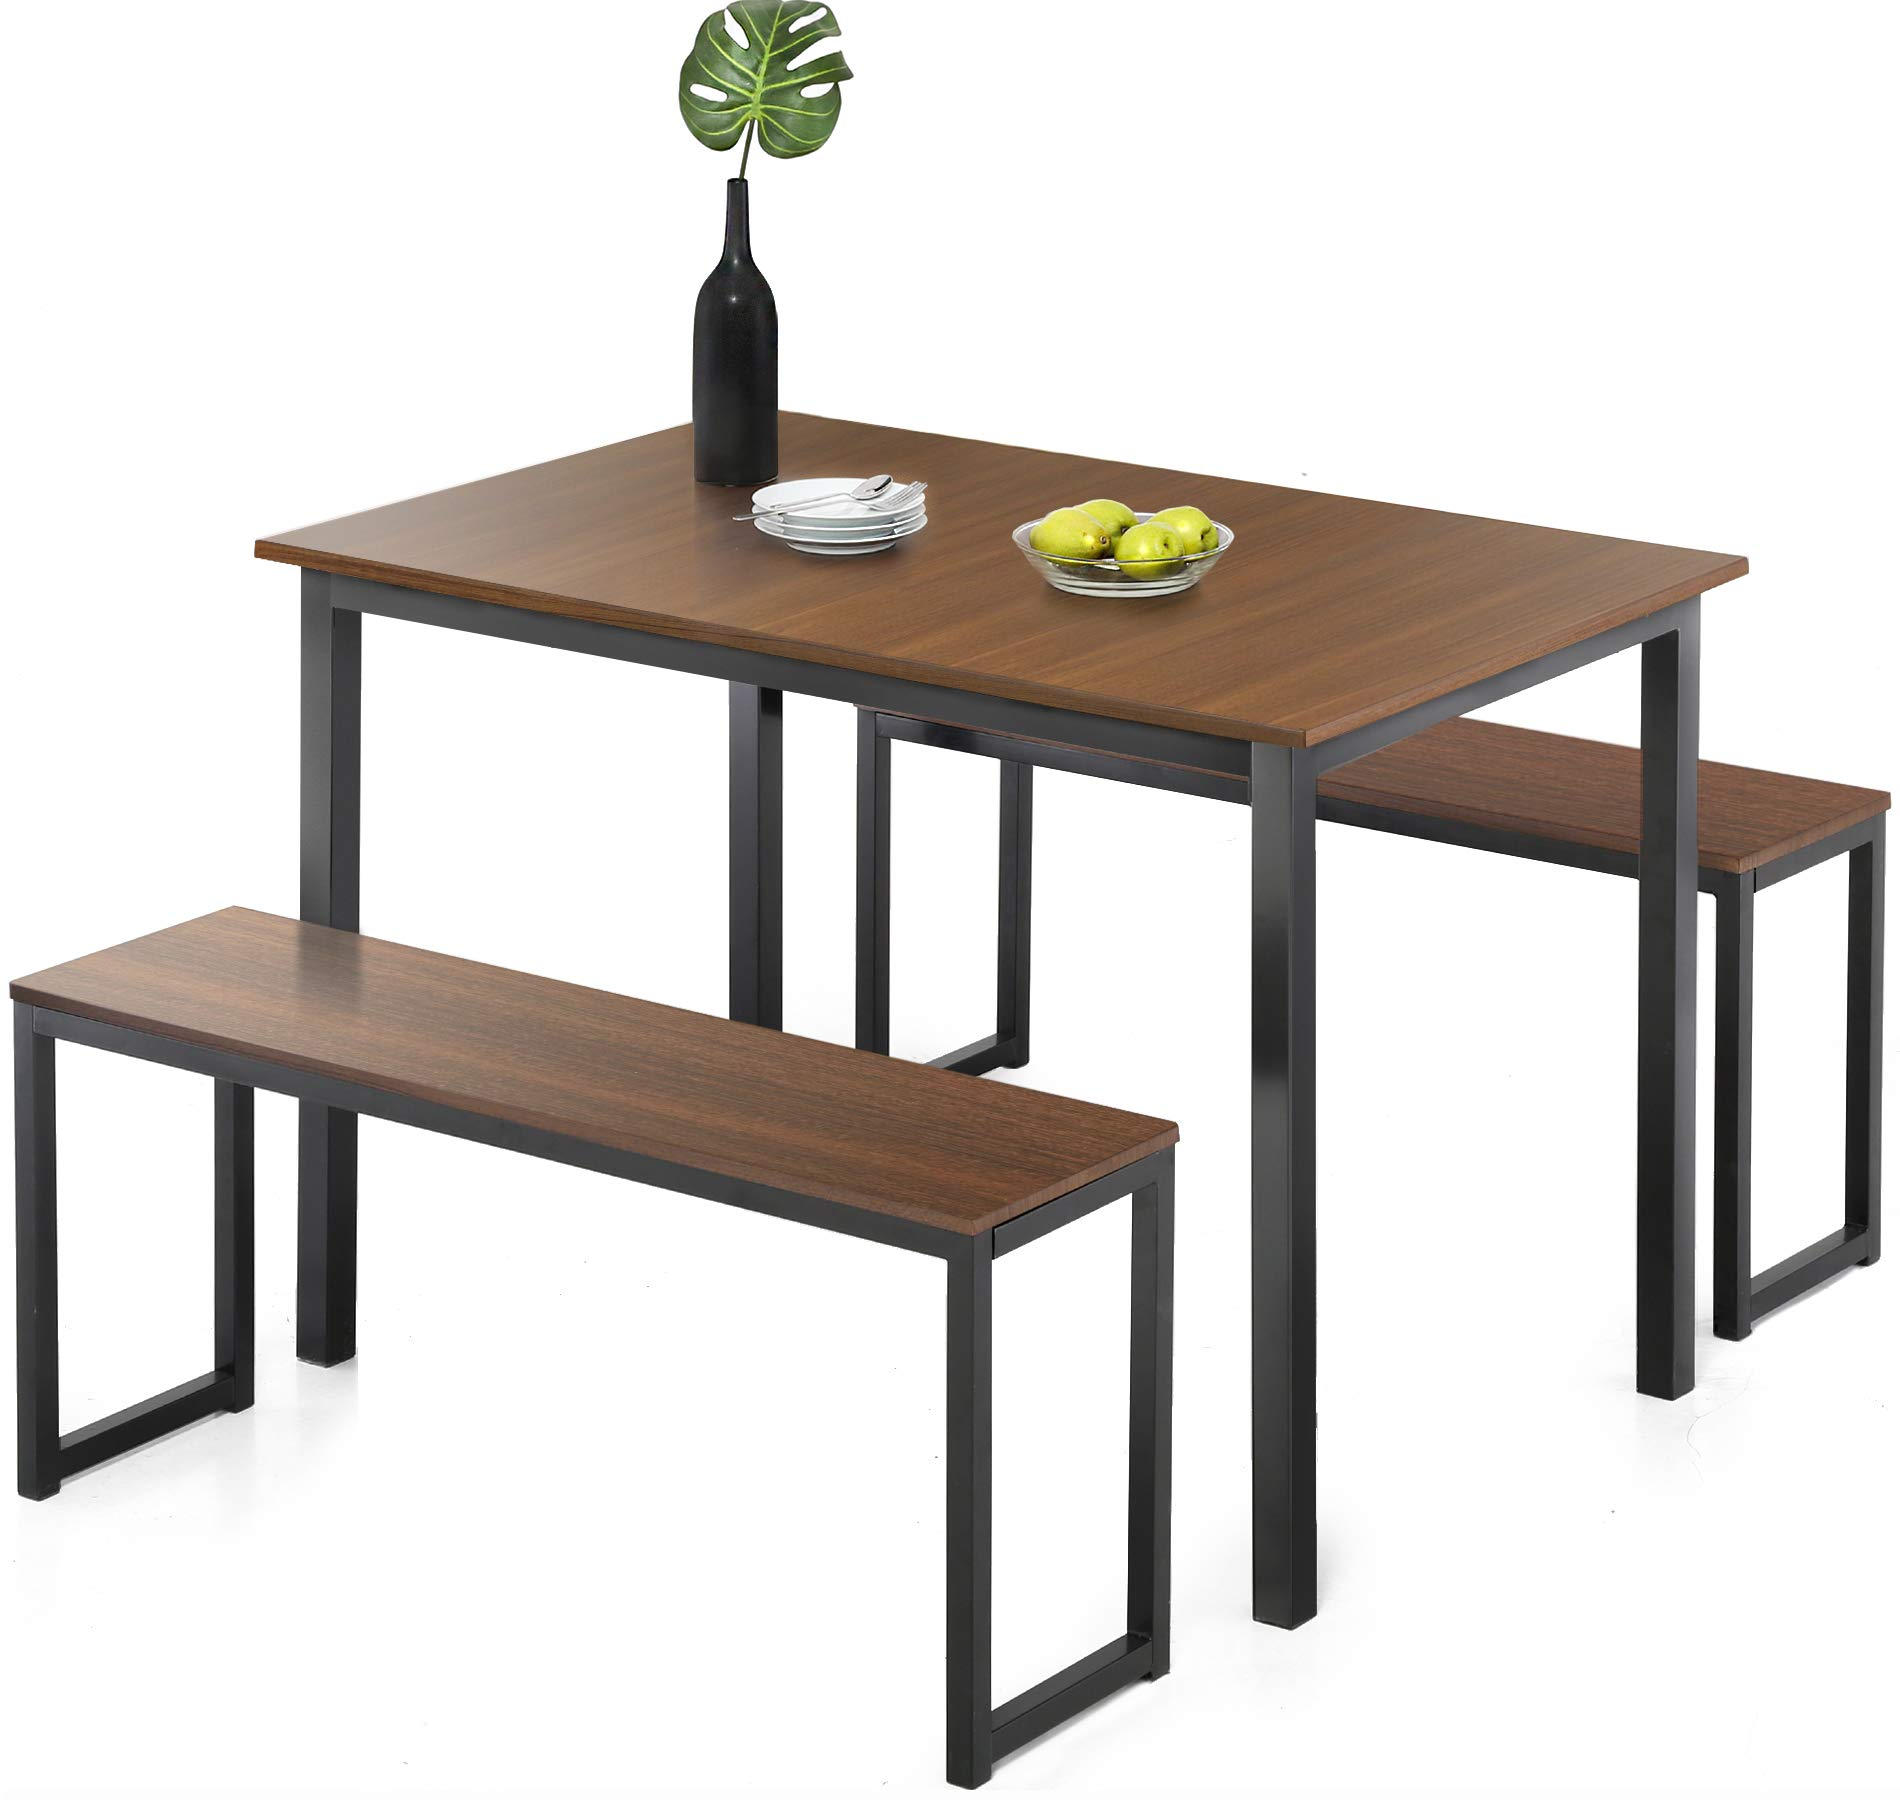 Homury Modern Studio Soho Dining Table with Two Benches 3 Piece Set,Brown by Homury